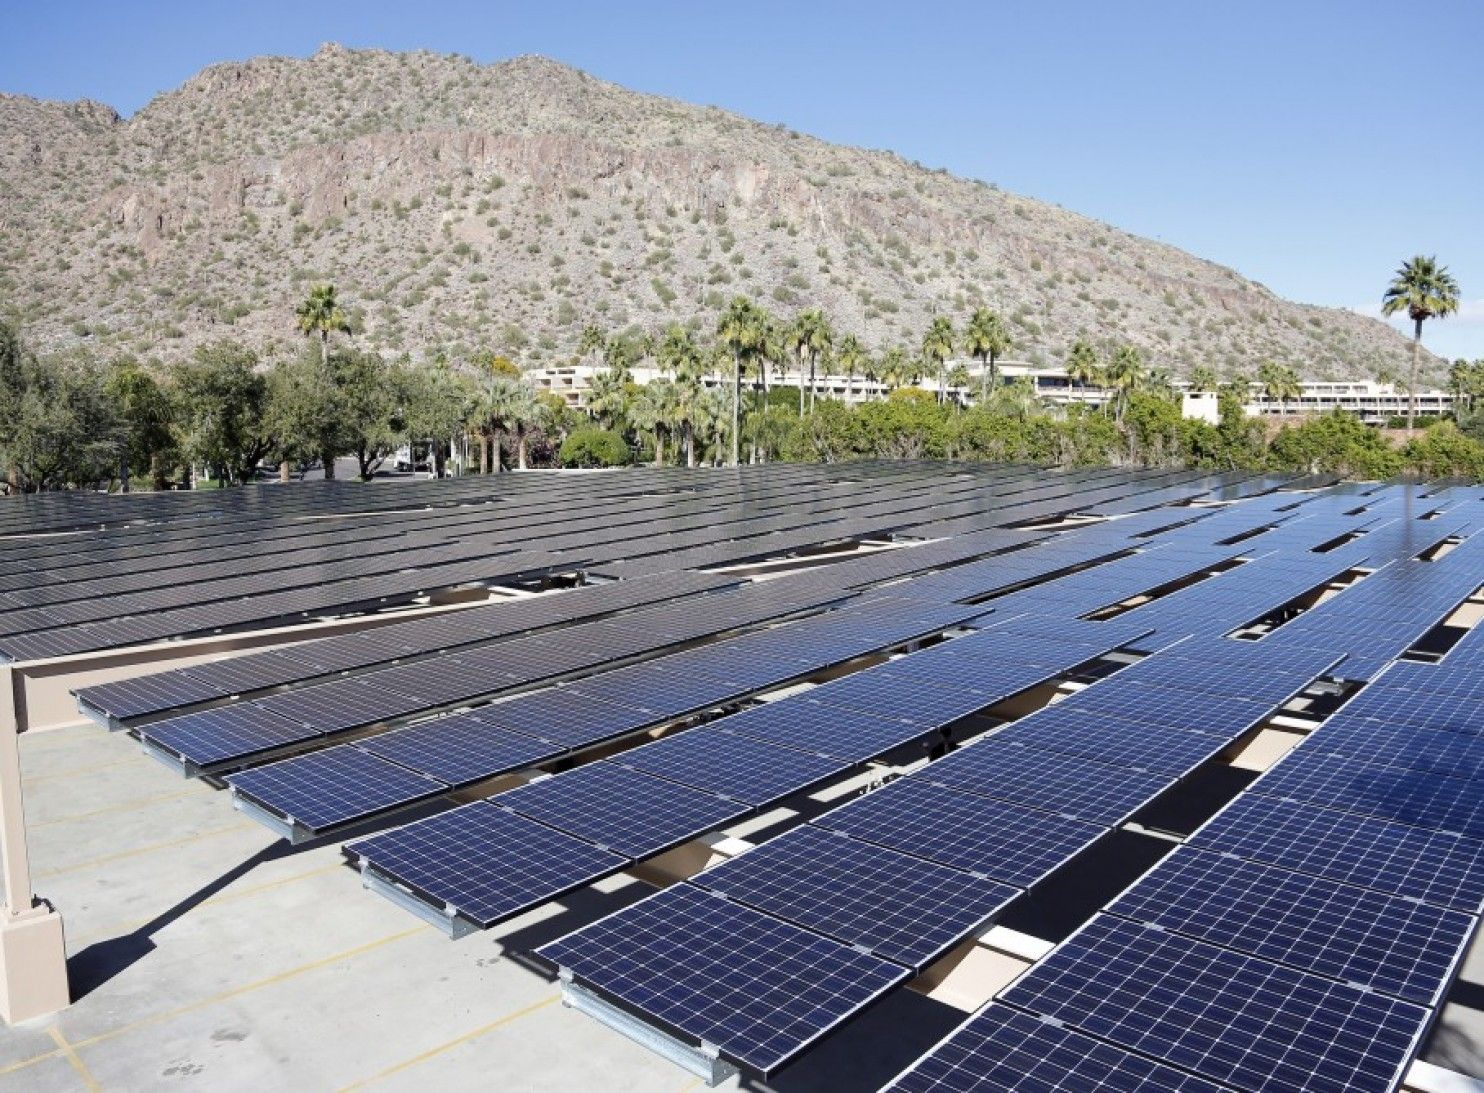 The Best Idea In A Long Time Covering Parking Lots With Solar Panels Advantages Of Solar Energy Solar Energy Diy Solar Panels